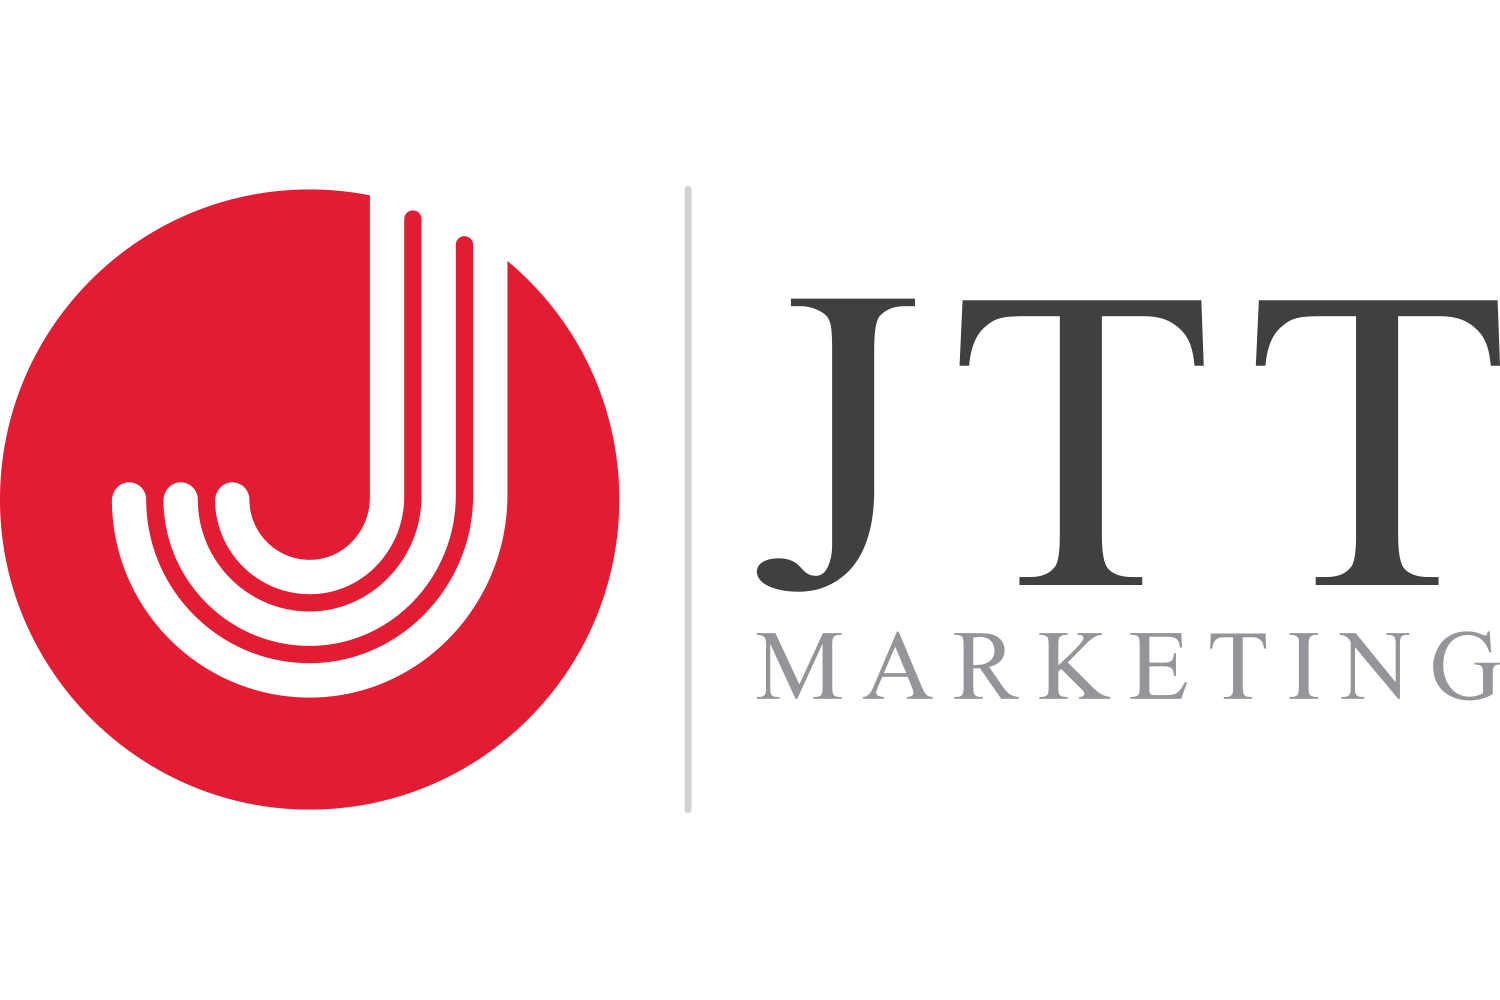 JTT Marketing